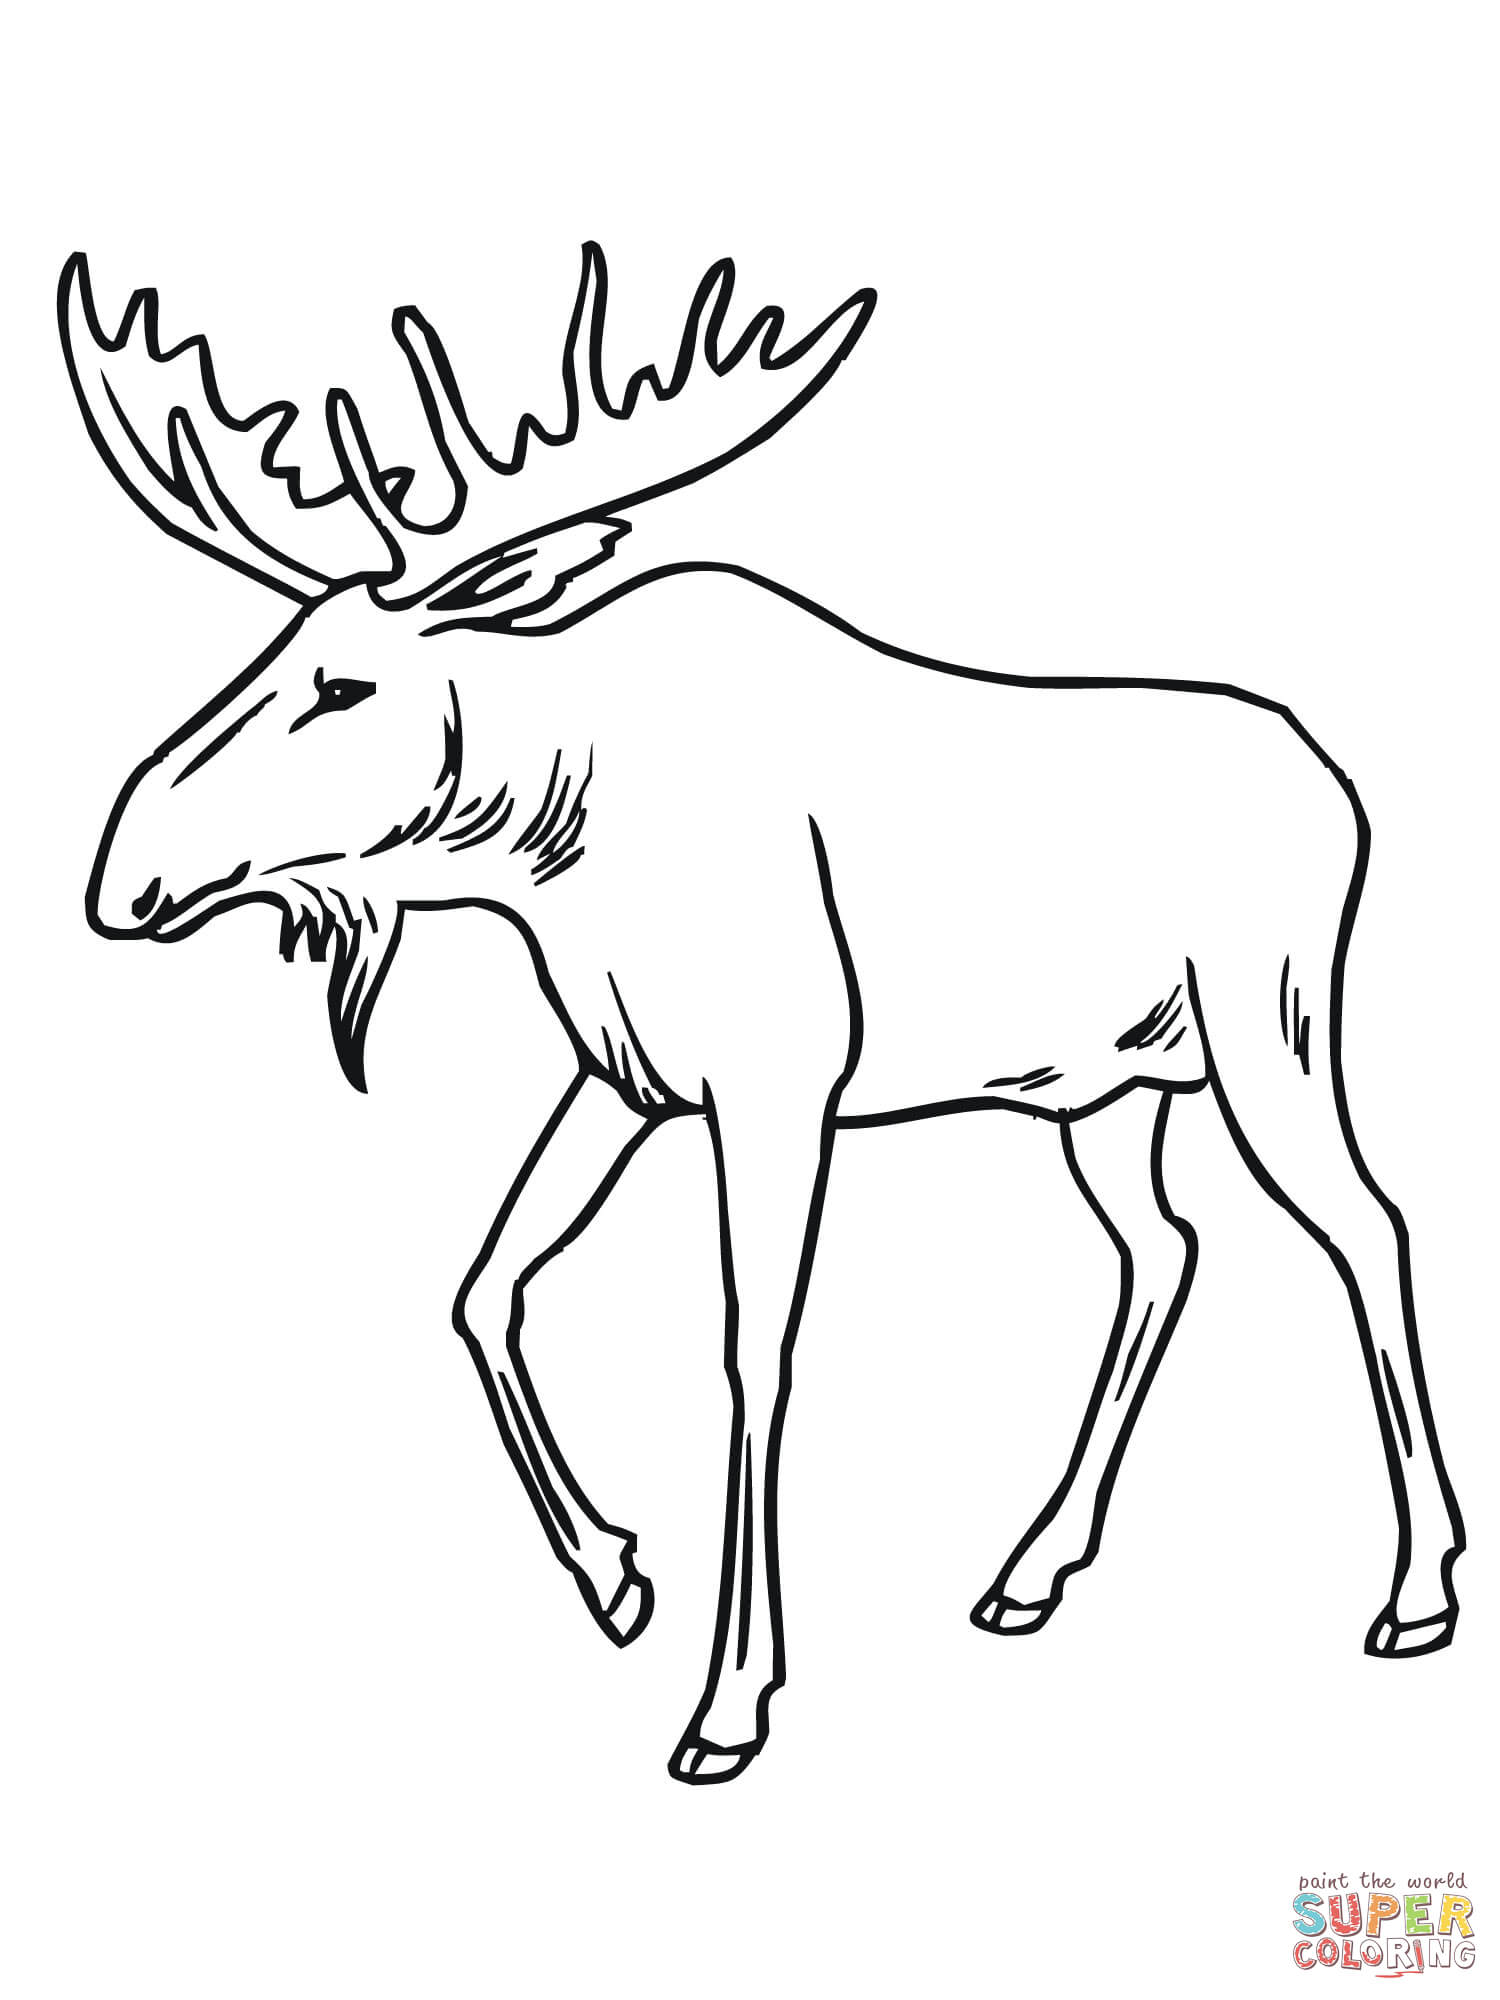 Moose Black And White Free Download Best Moose Black And